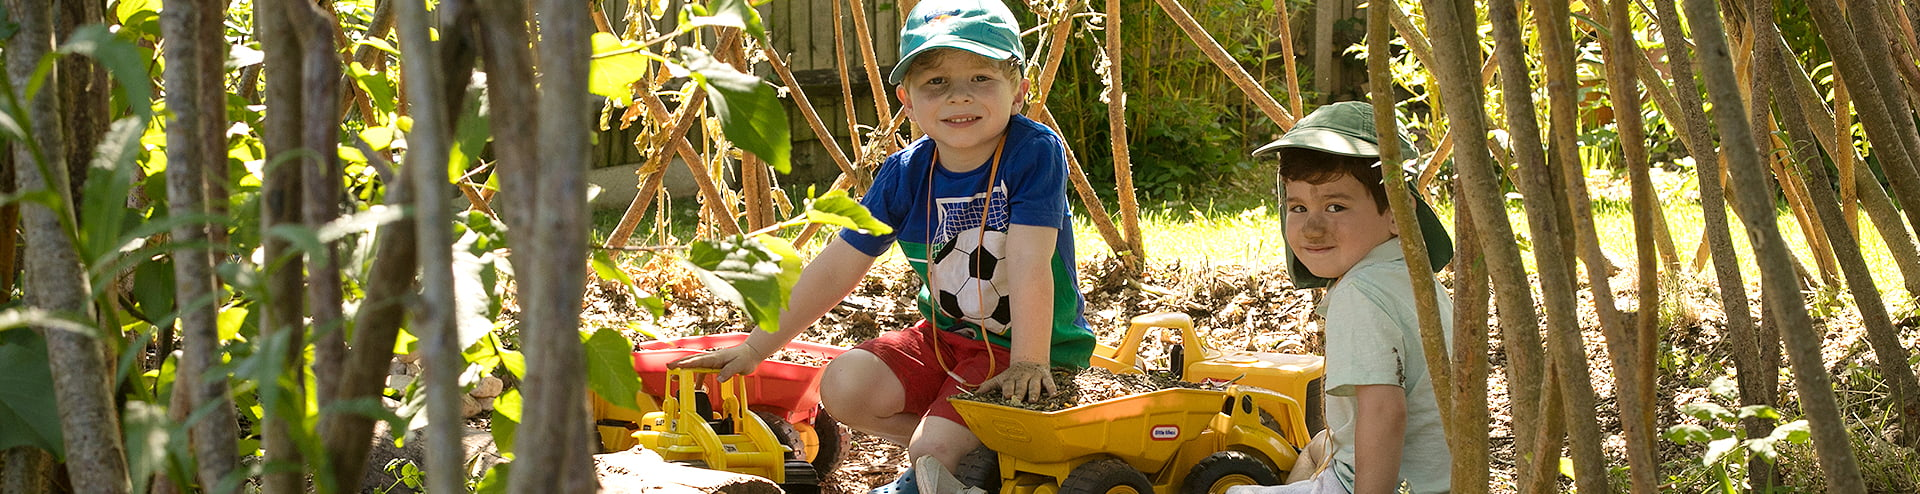 Two boys playing with diggers in Jigsaw garden